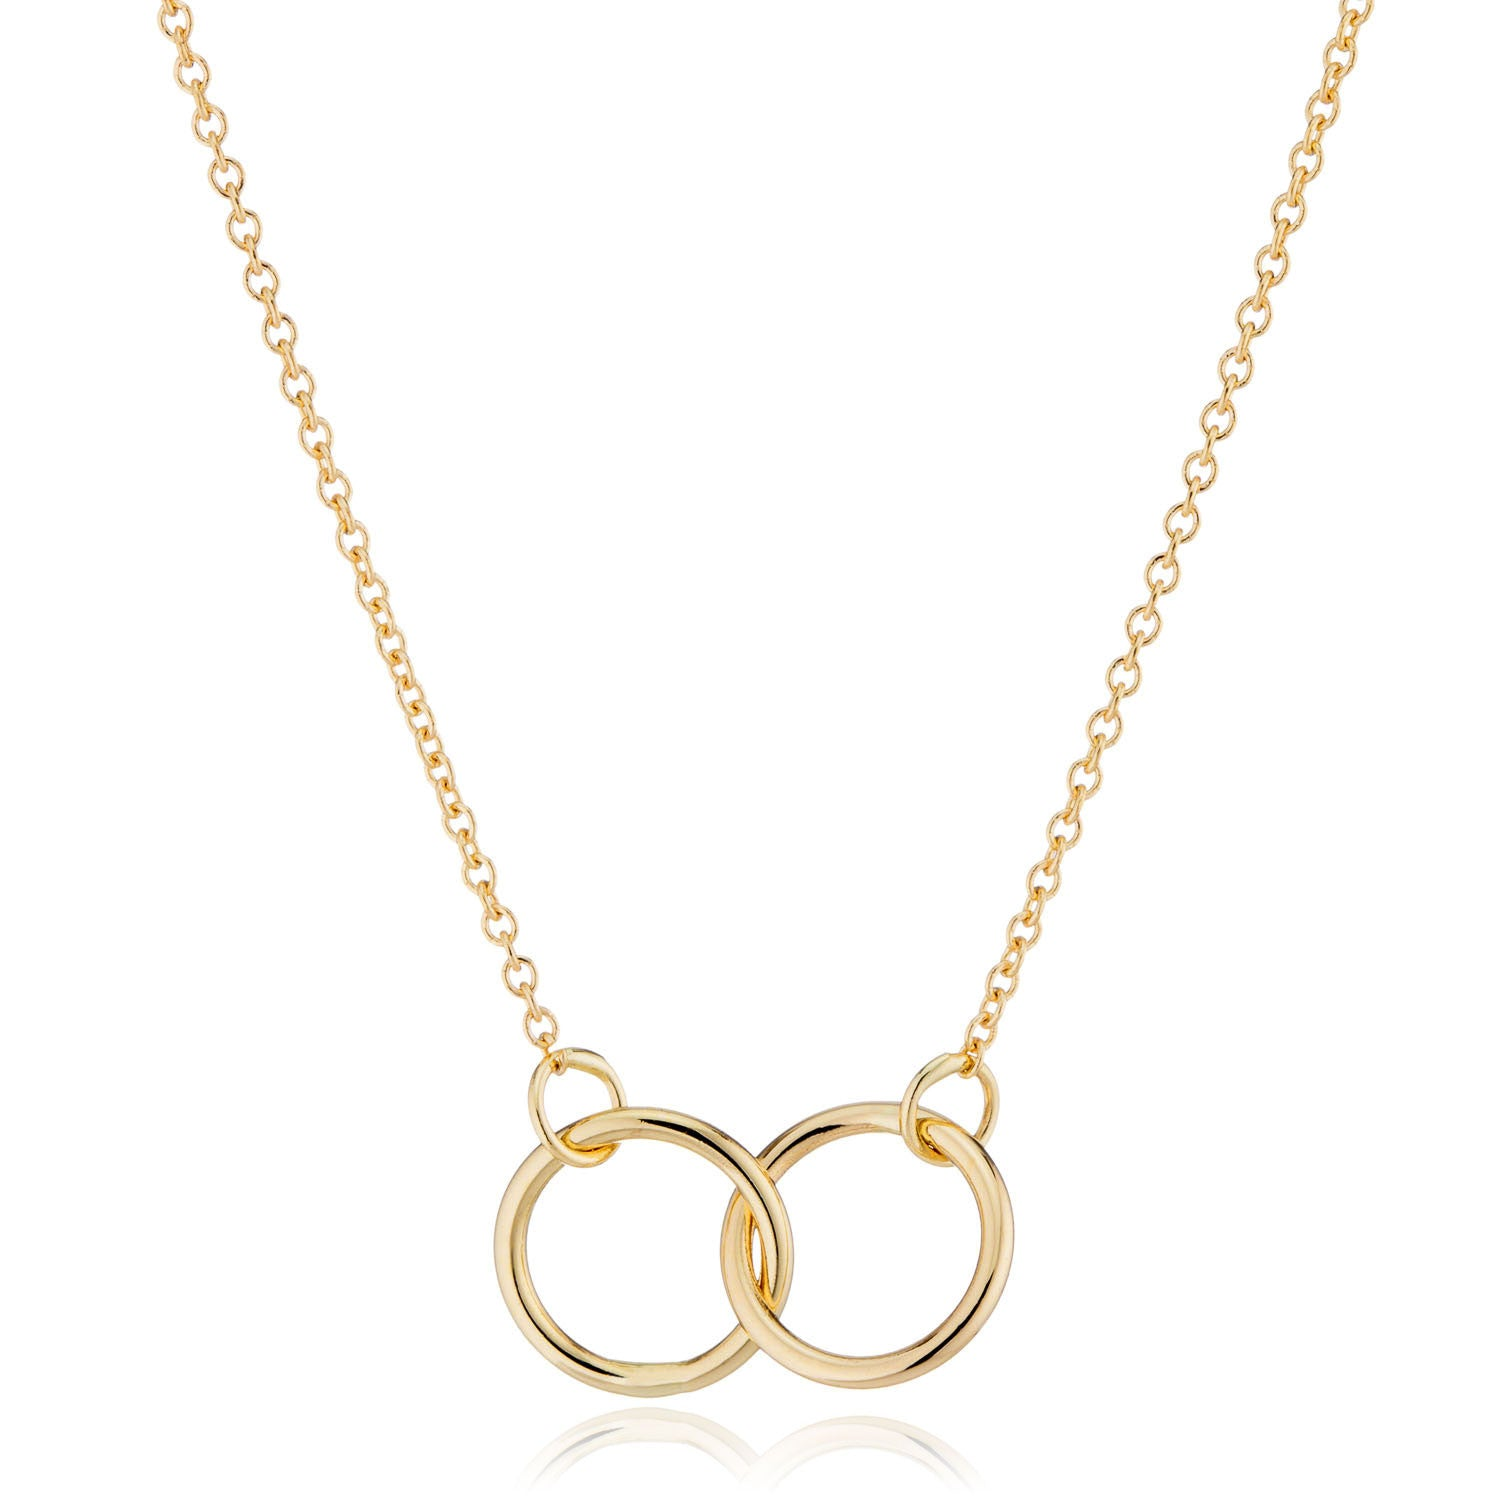 14K Gold Interlocking Rings Necklace by Valerie Madison Jewelry